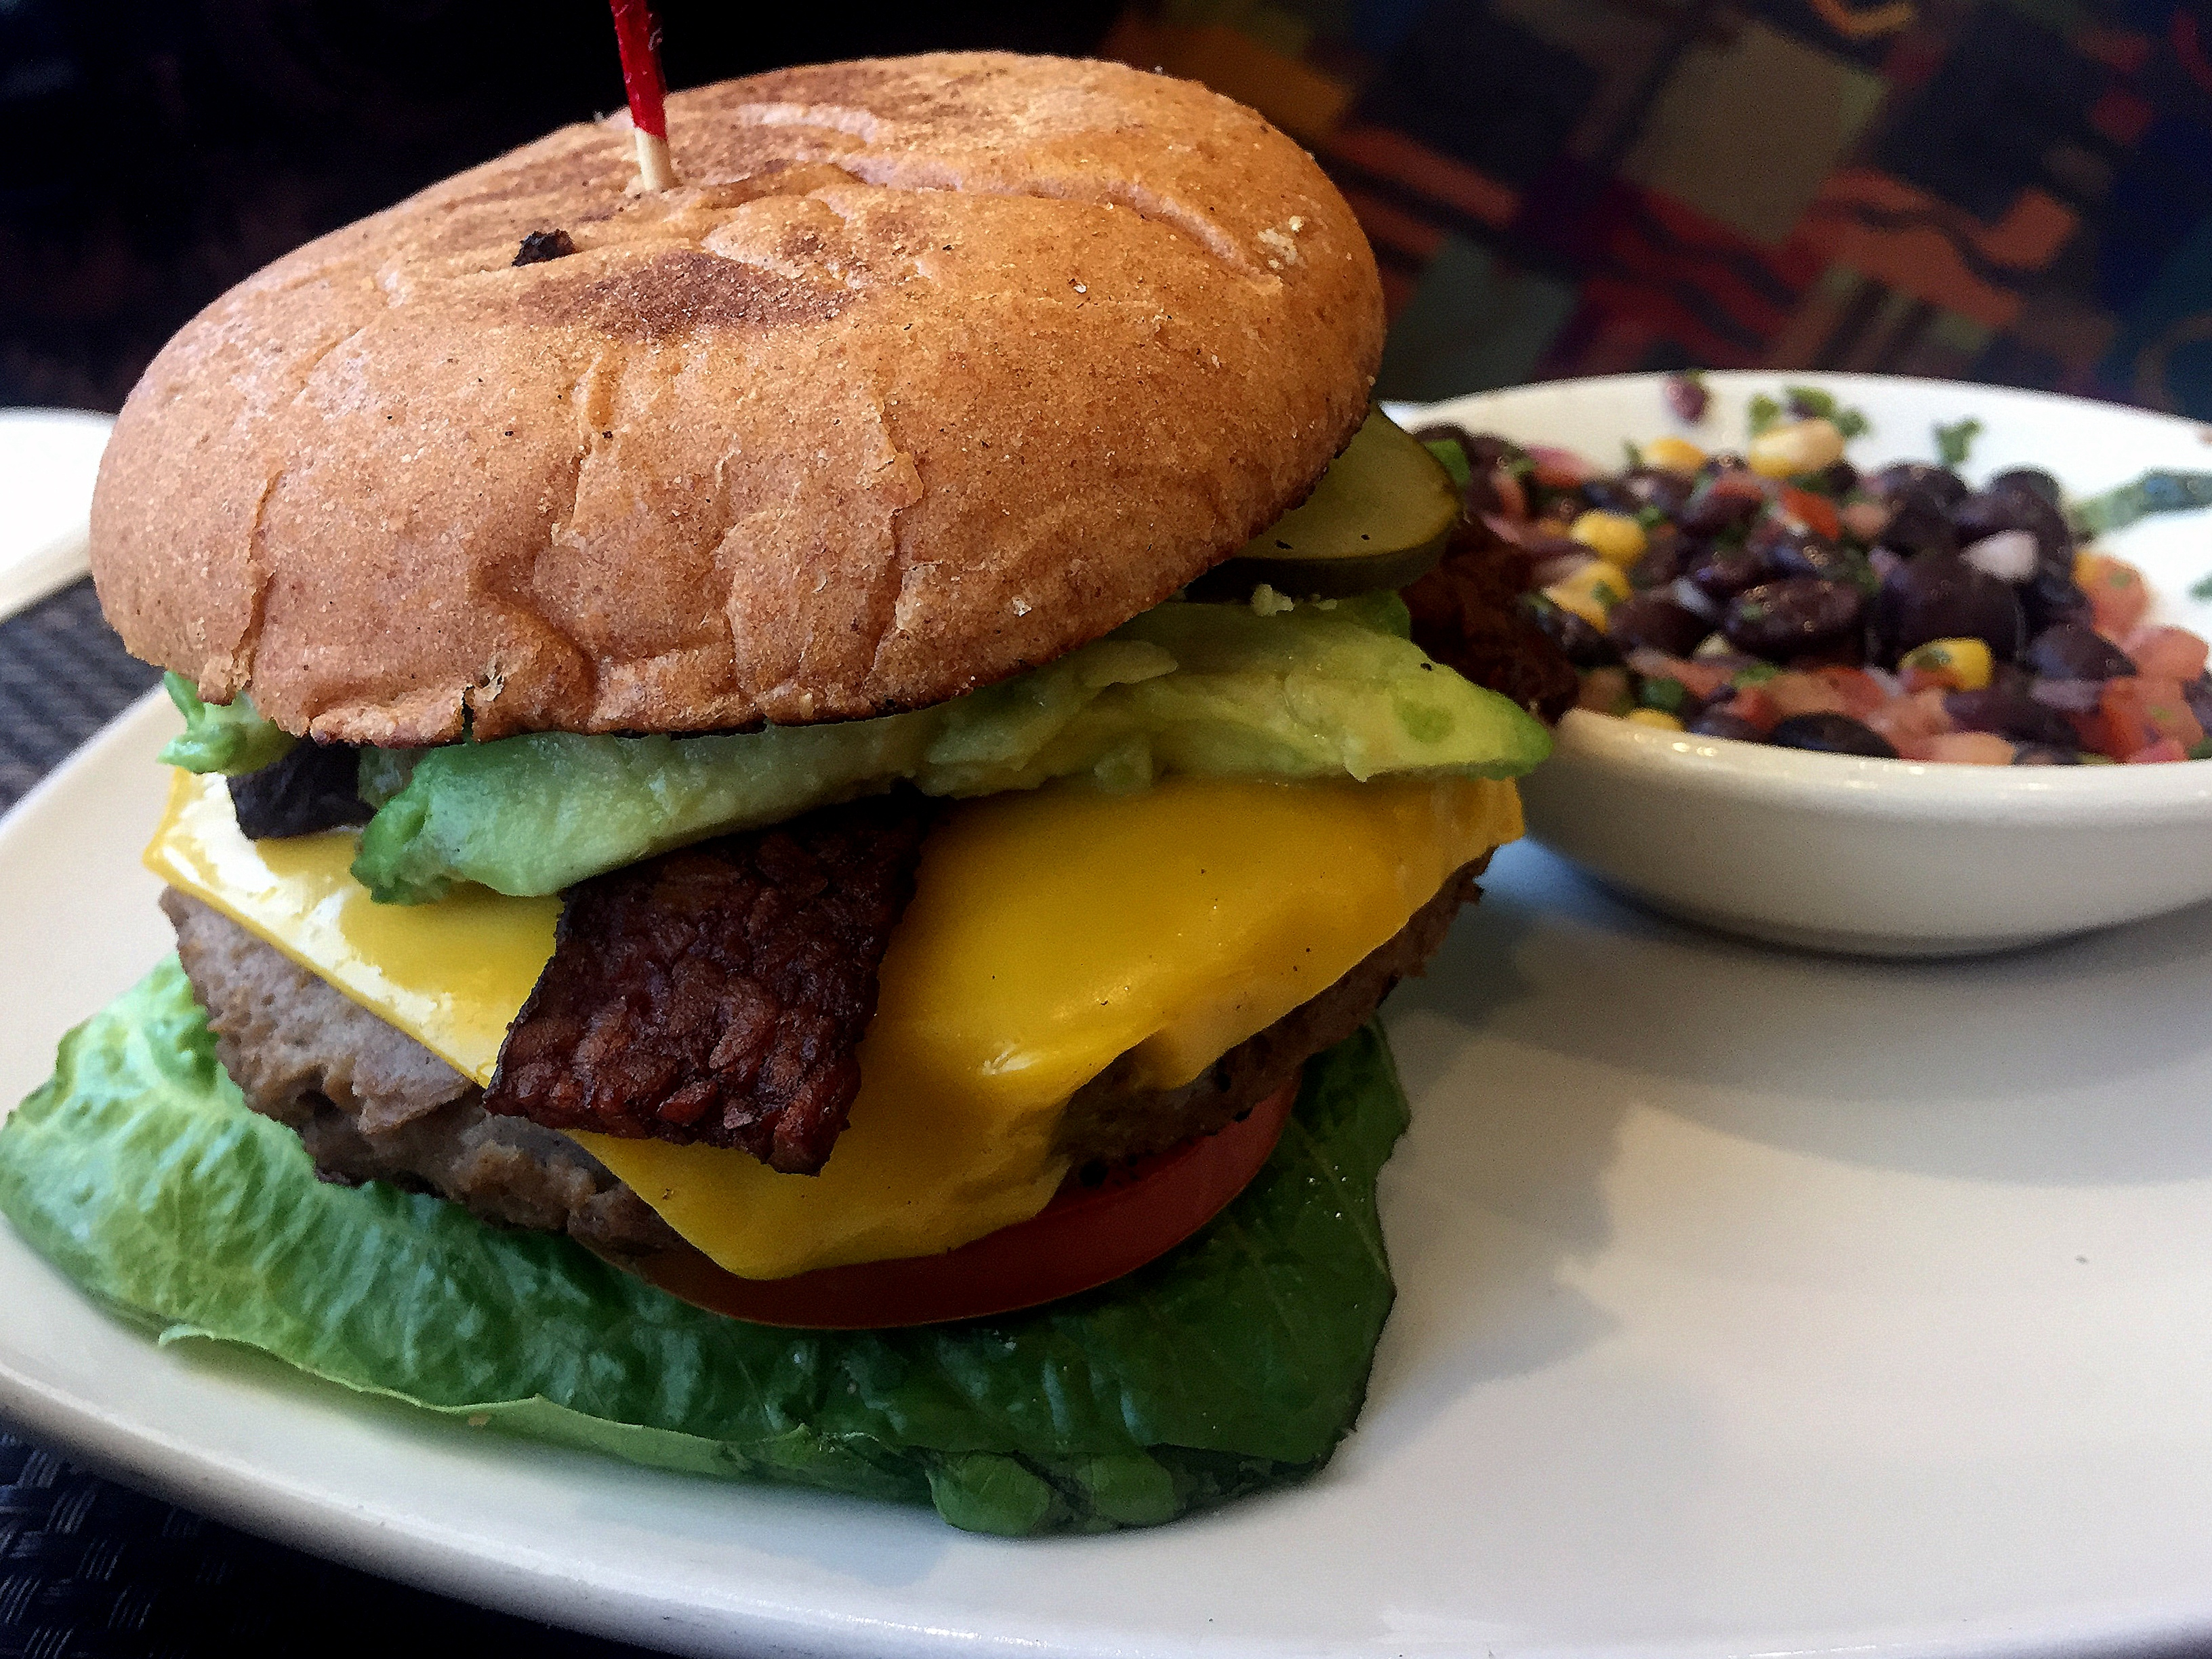 Violette's 'cheeseburger'. Vegas is slowly undergoing a plant based revolution